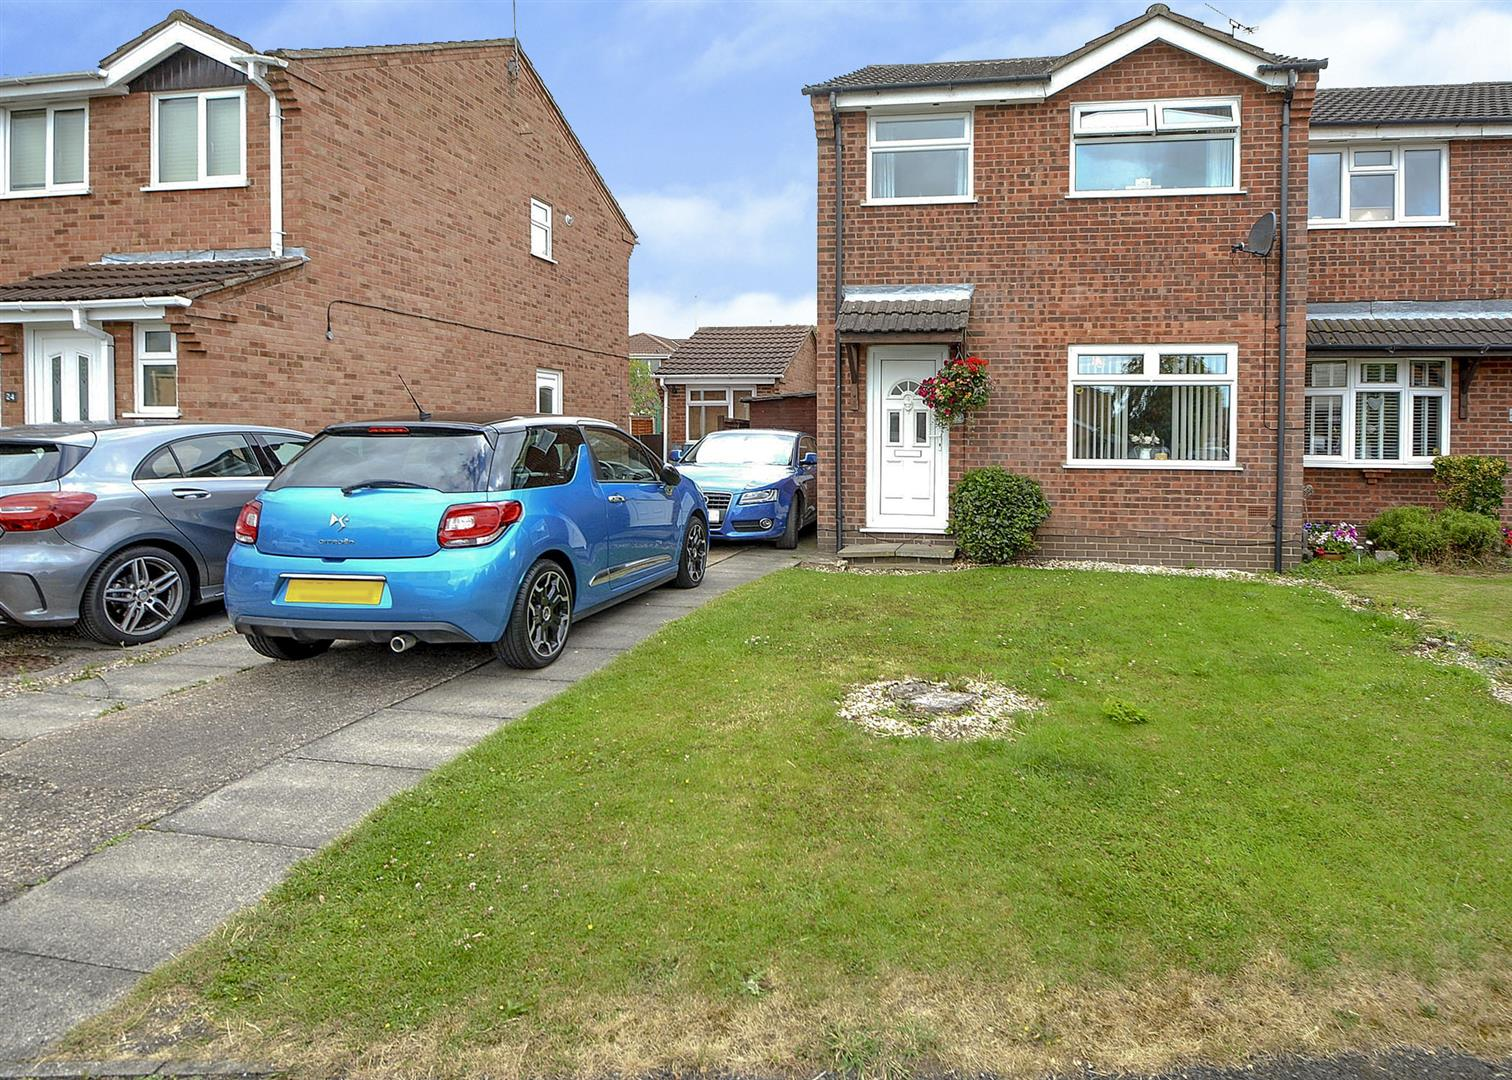 3 Bedrooms Semi Detached House for sale in Bakewell Road, Long Eaton